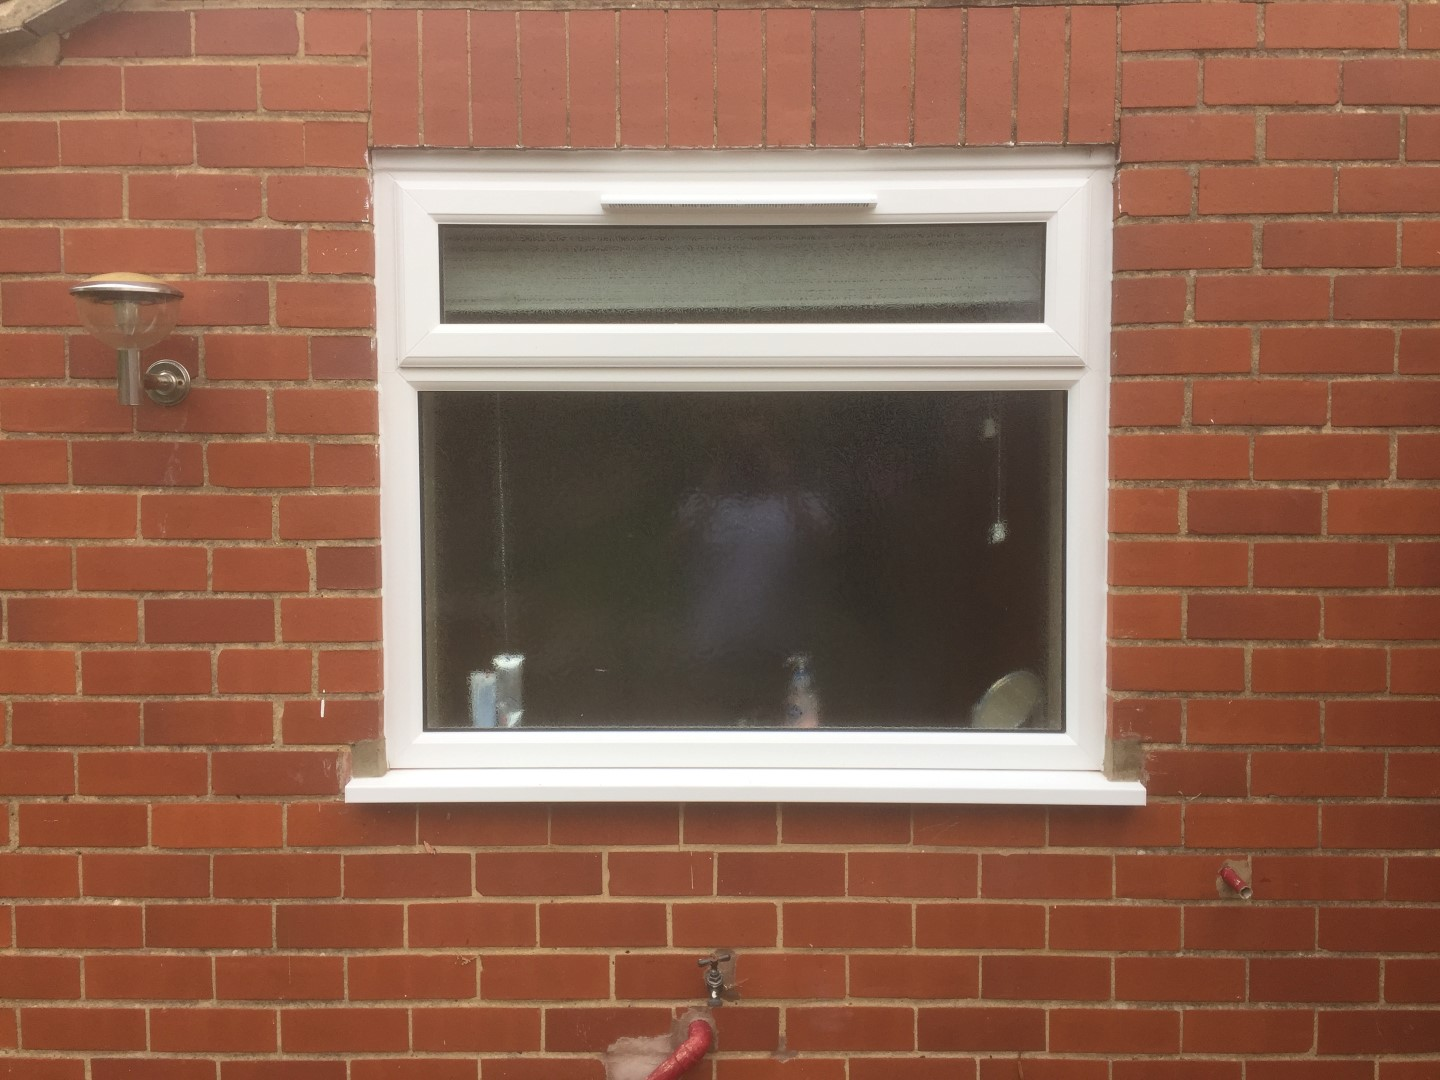 Newly installed bathroom window